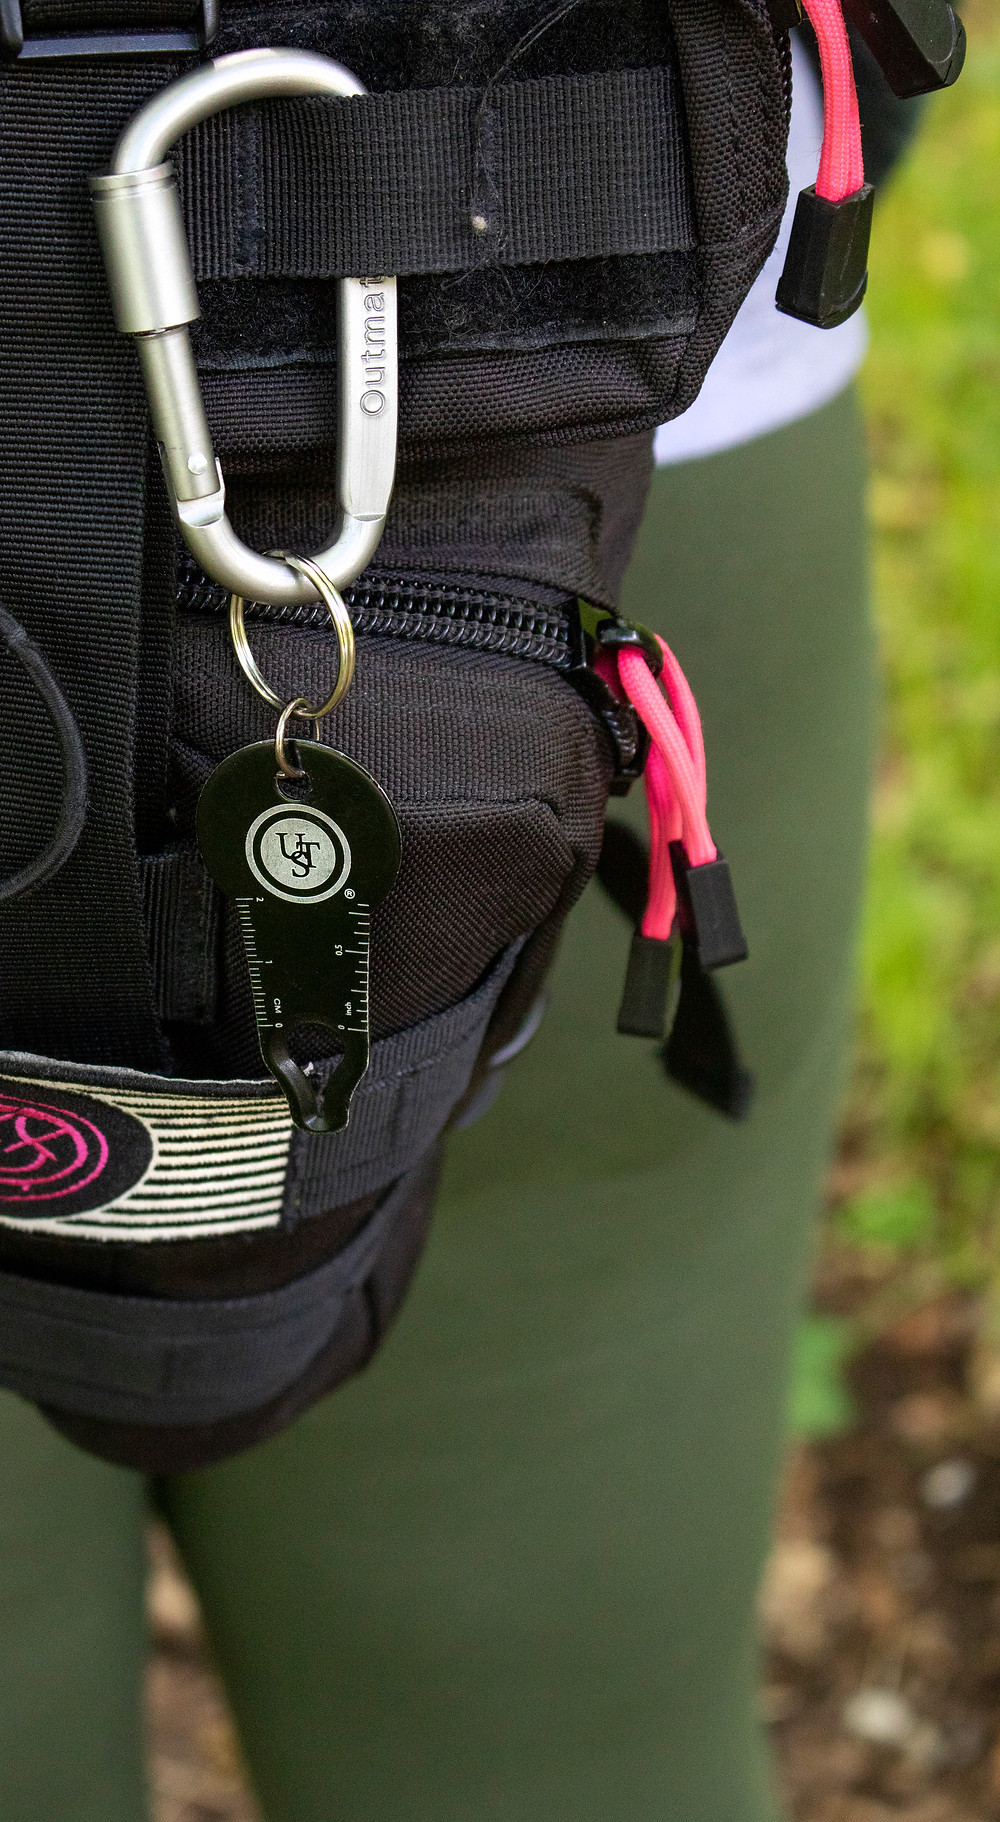 Tick puller hanging from backpack